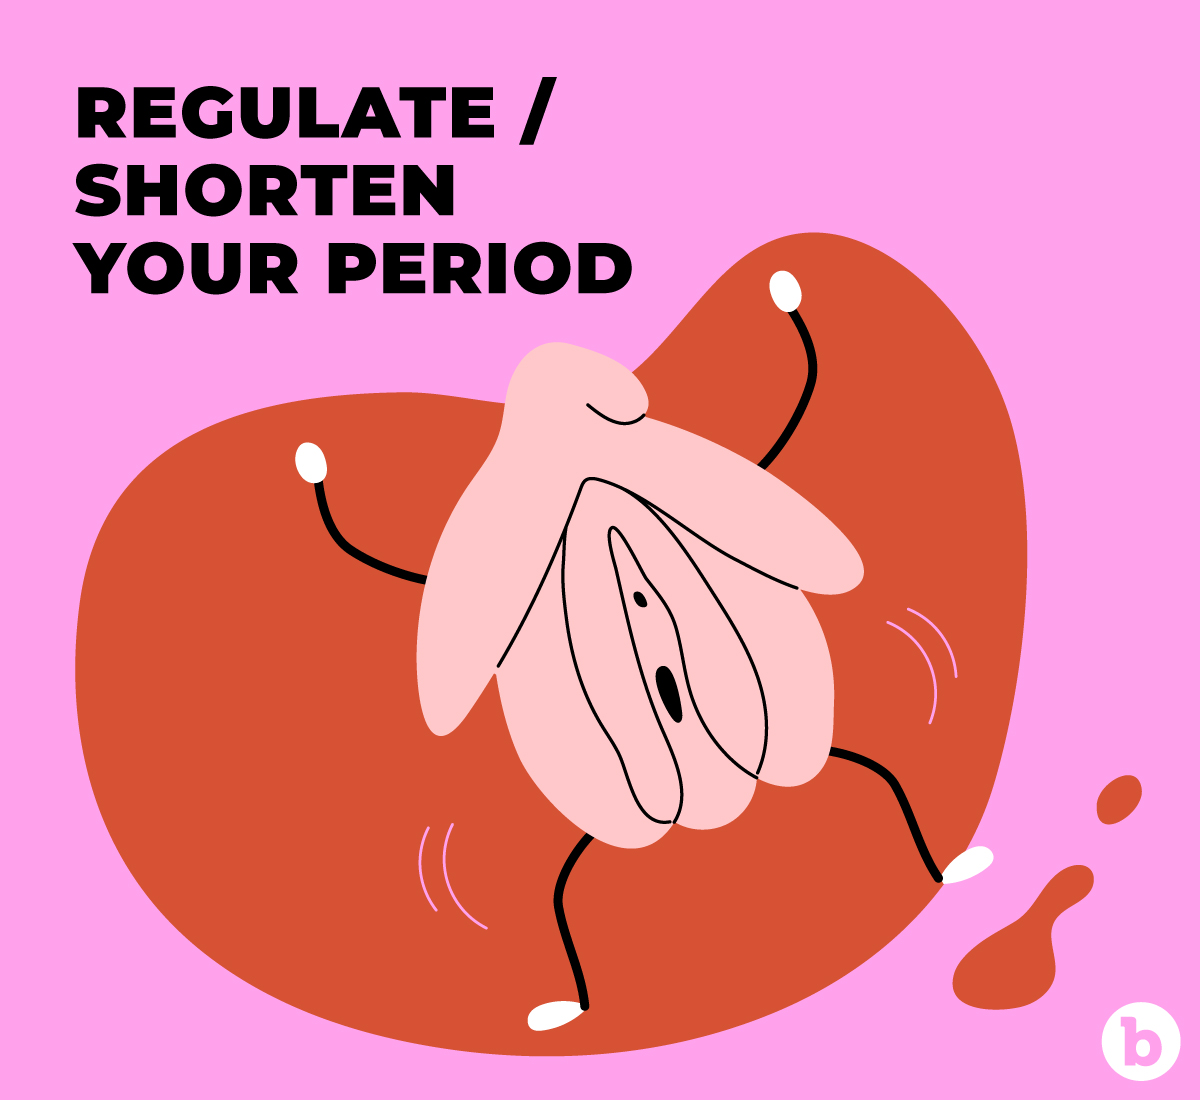 Sexual pleasure can help regulate and even shorten your period